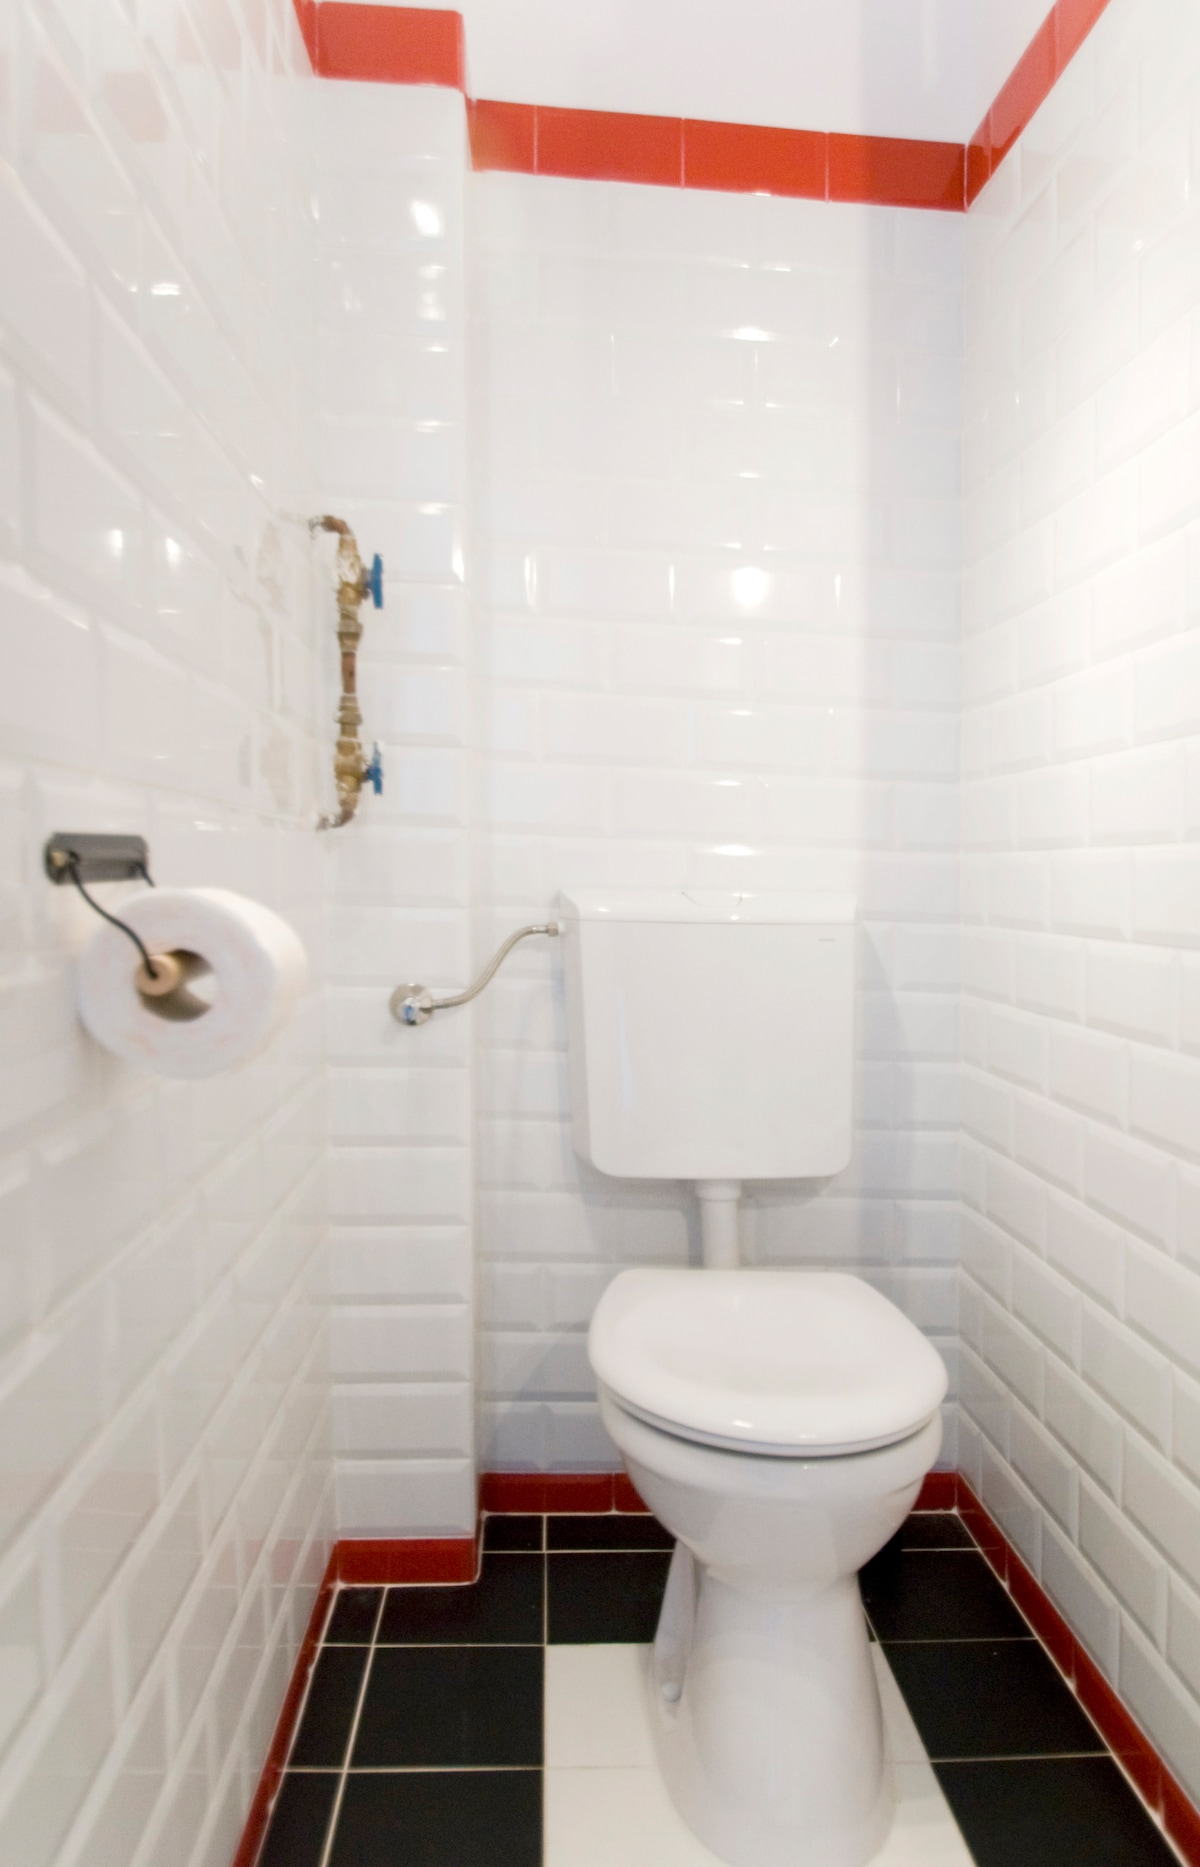 the bathroom has unlimited hot water and all the things you might need from hair dryer to a washing machine with washing powder and softener, it is cleaned everyday by the Budapesting team